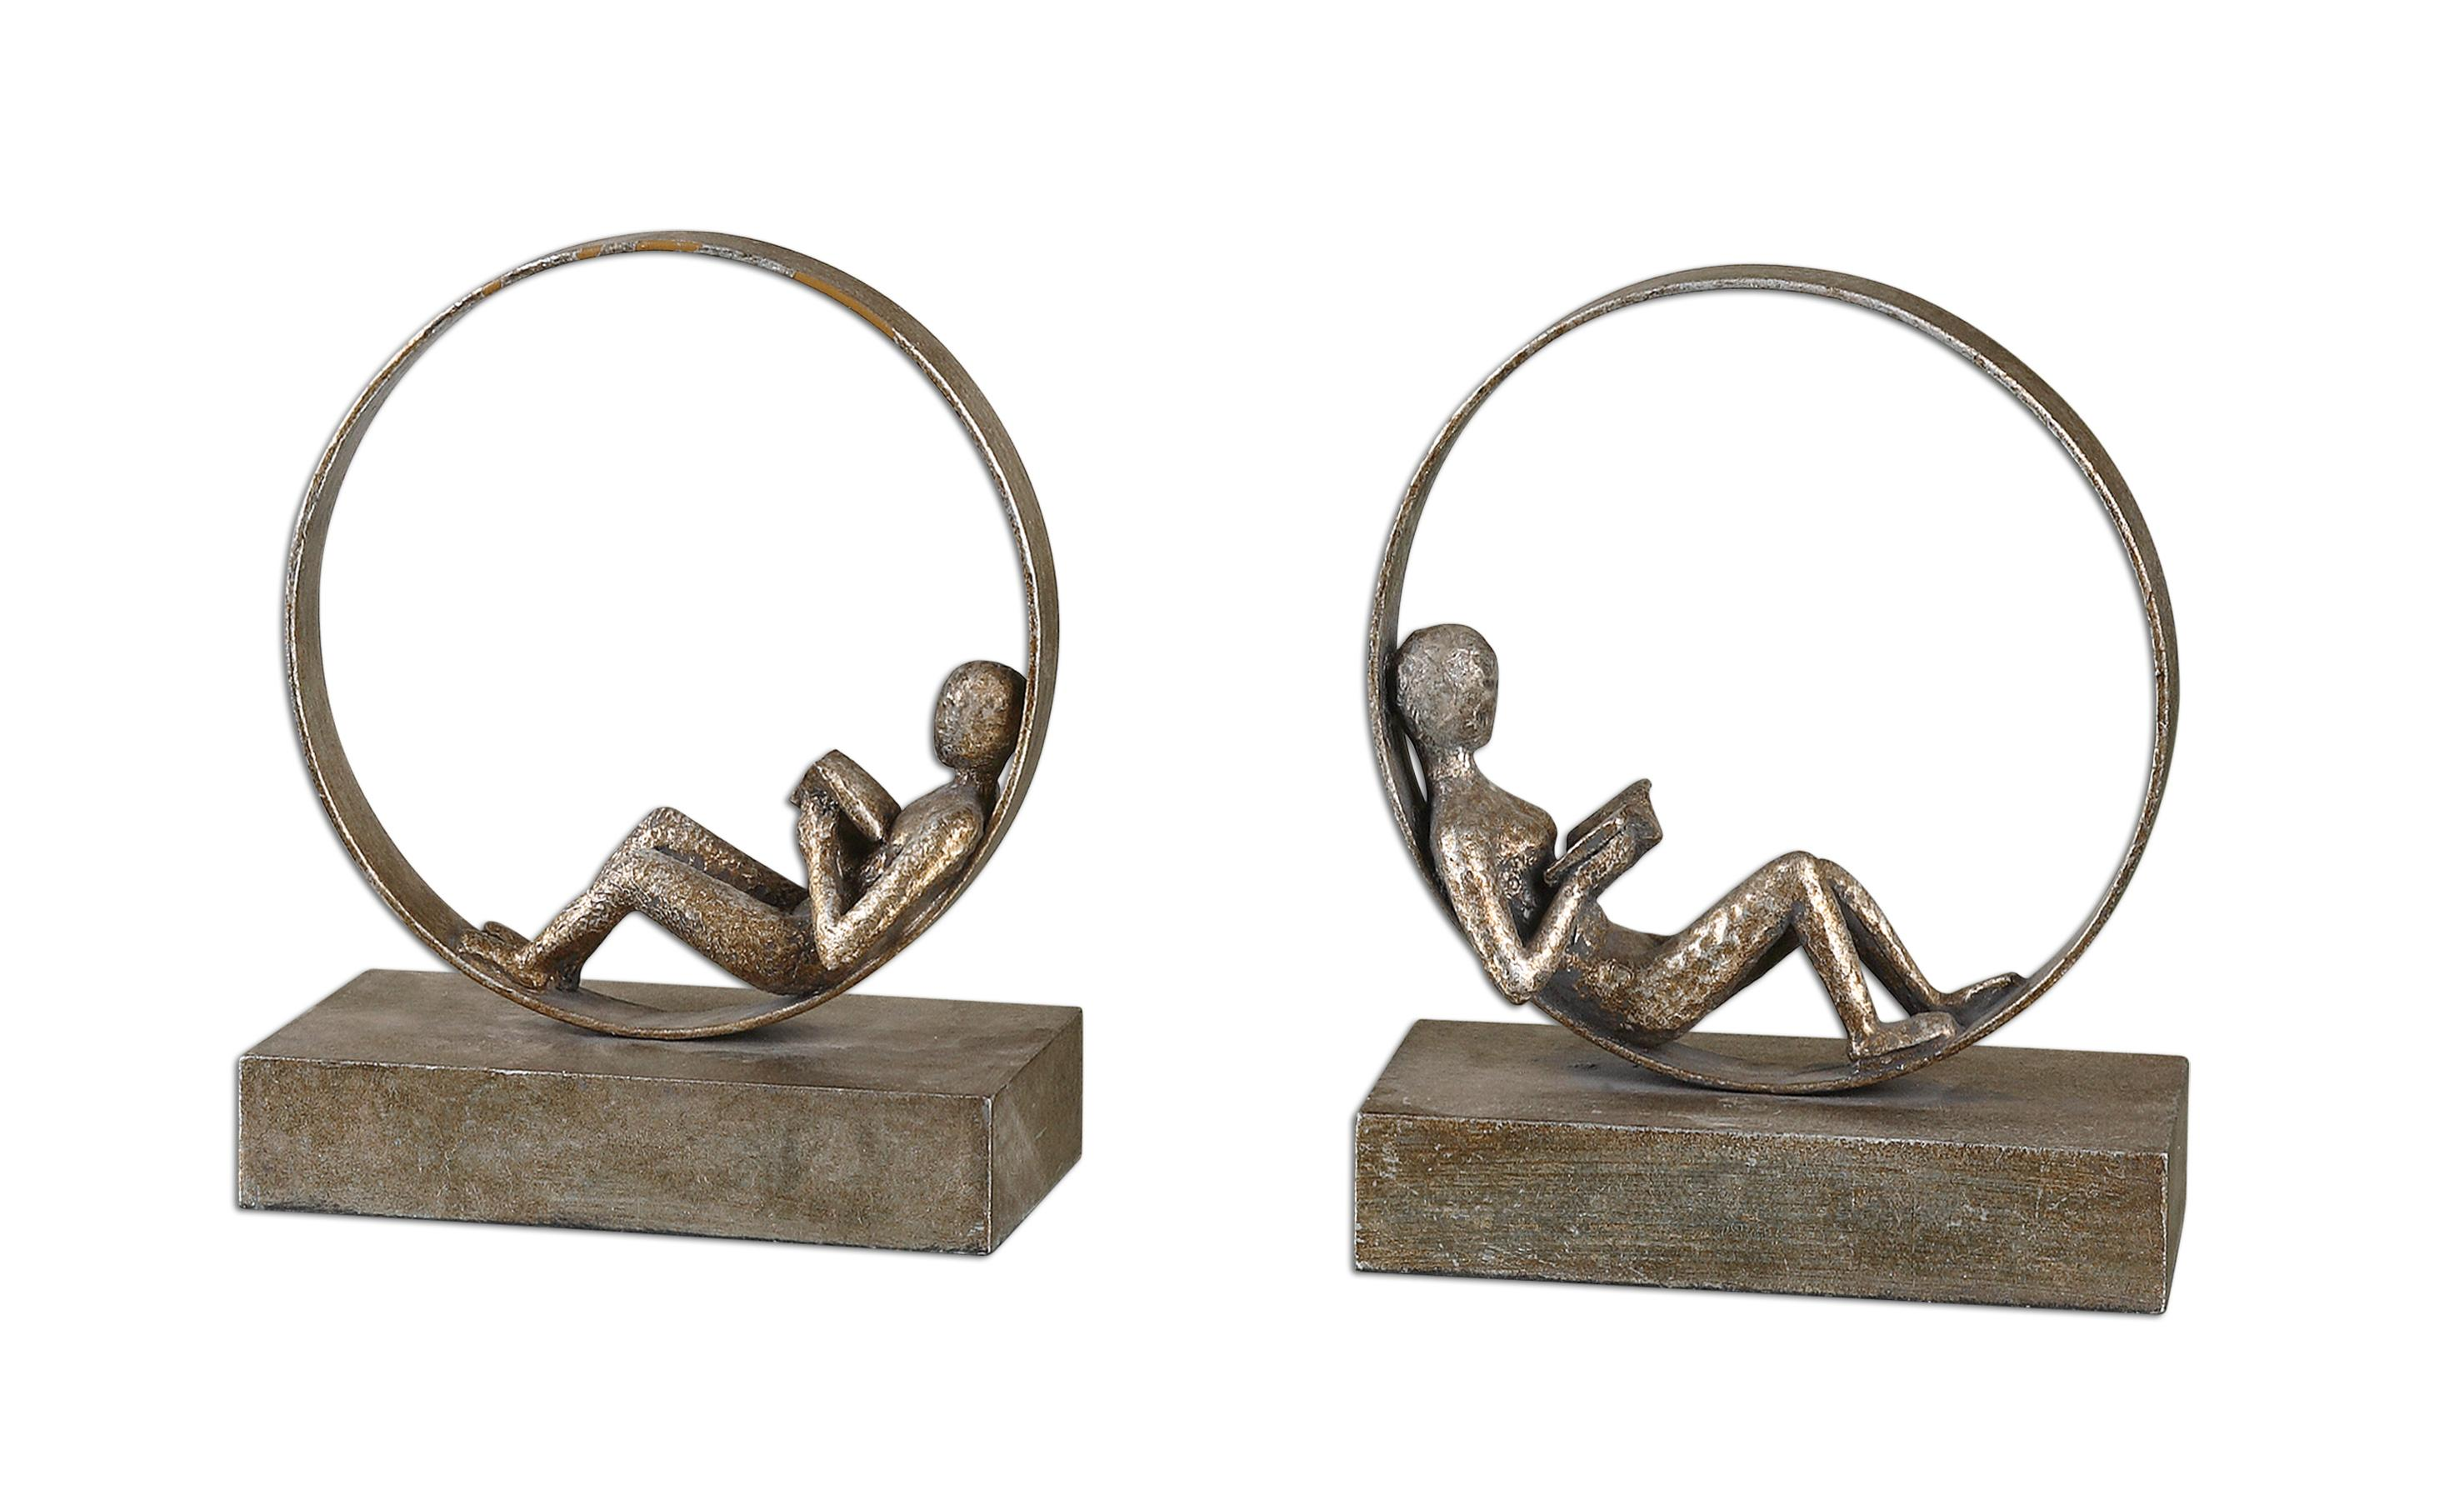 Uttermost Accessories Lounging Reader Bookends Set of 2 - Item Number: 19596